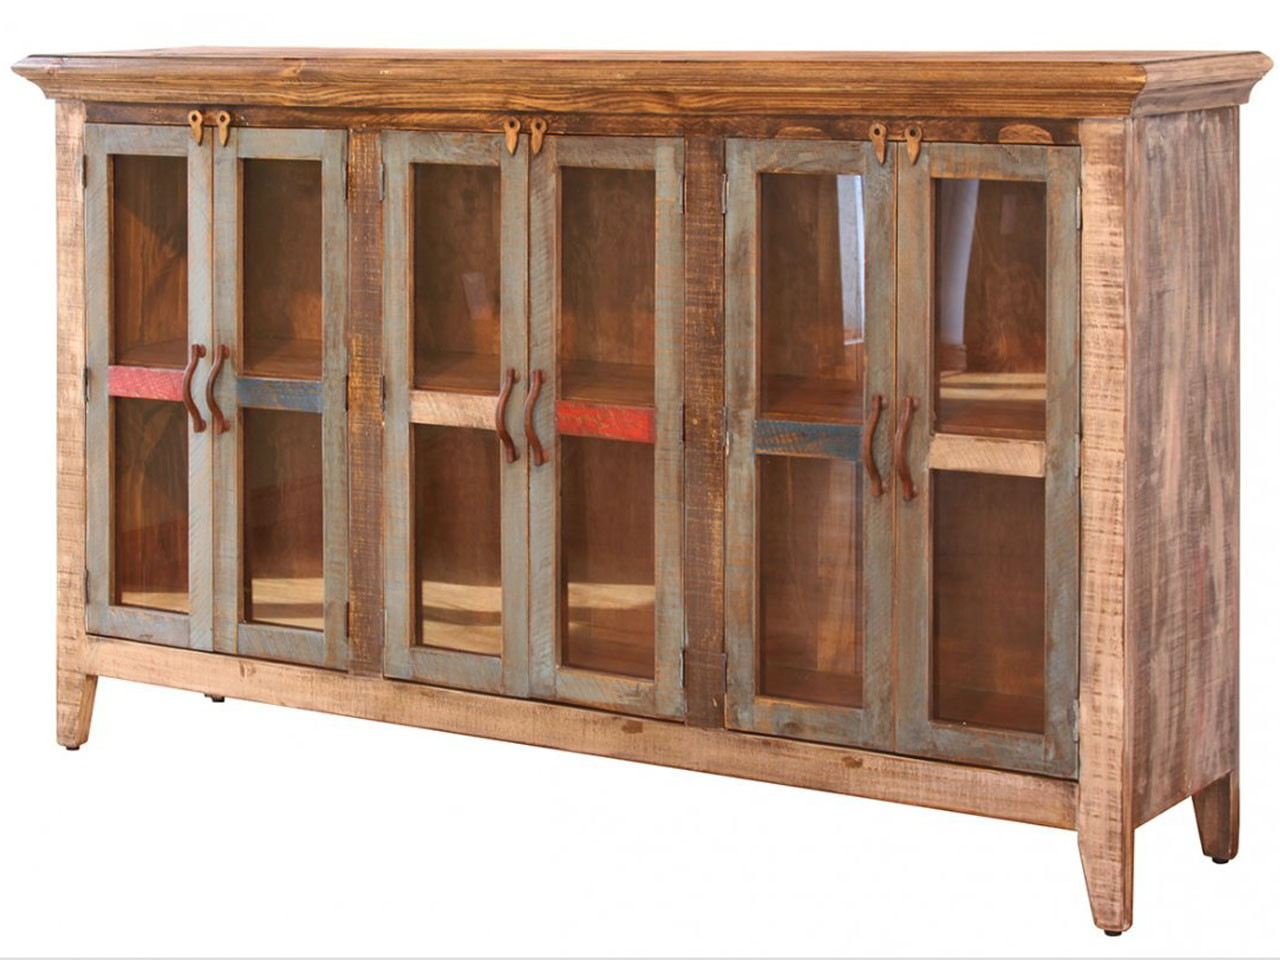 Rustic Multi Colored Console Table With 6 Glass Paneled Doors